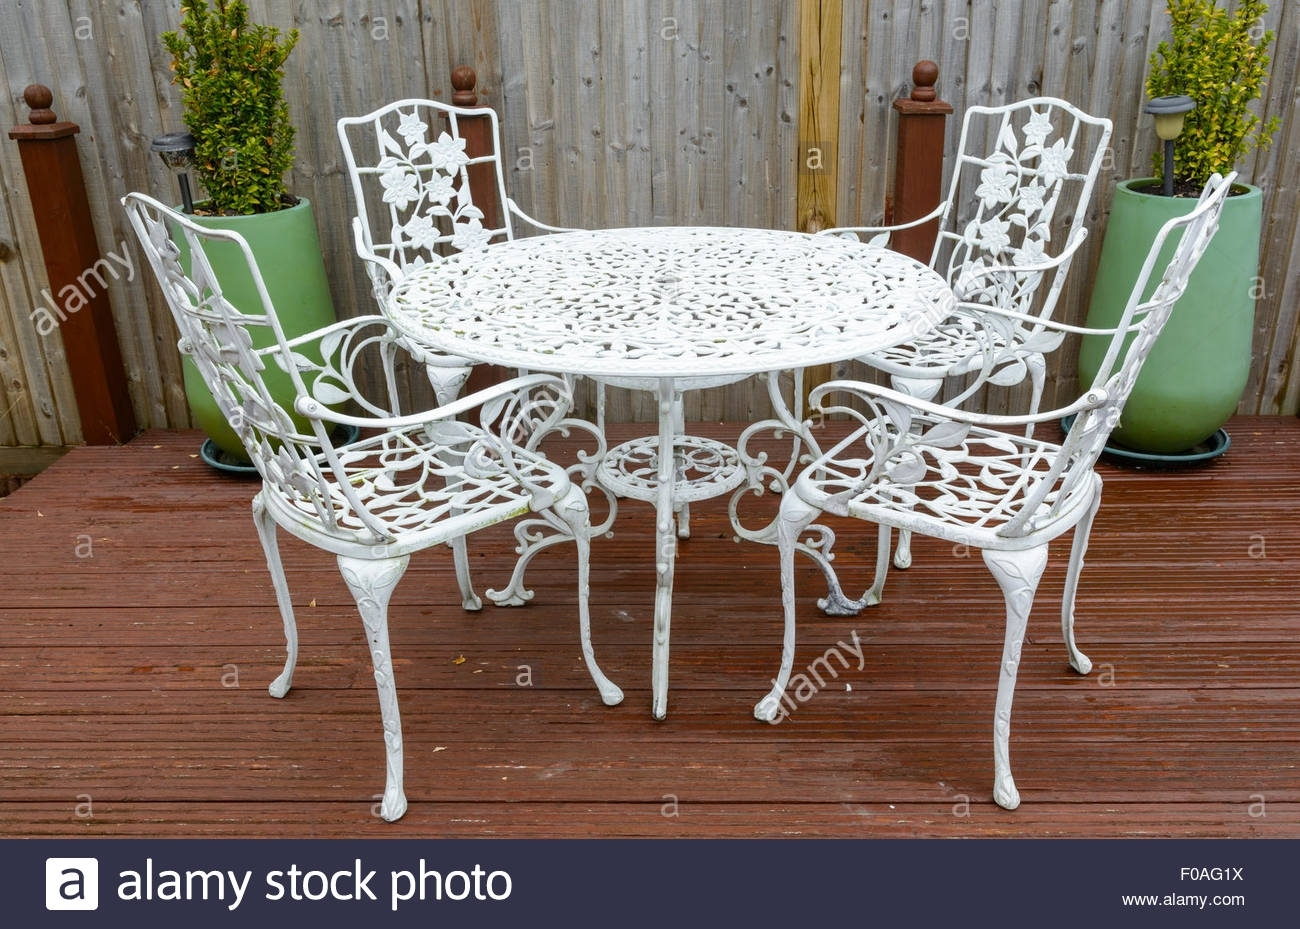 Cast Iron Chairs Stock Photos & Cast Iron Chairs Stock Images – Alamy With Regard To Newest Chapleau Ii Side Chairs (#5 of 20)